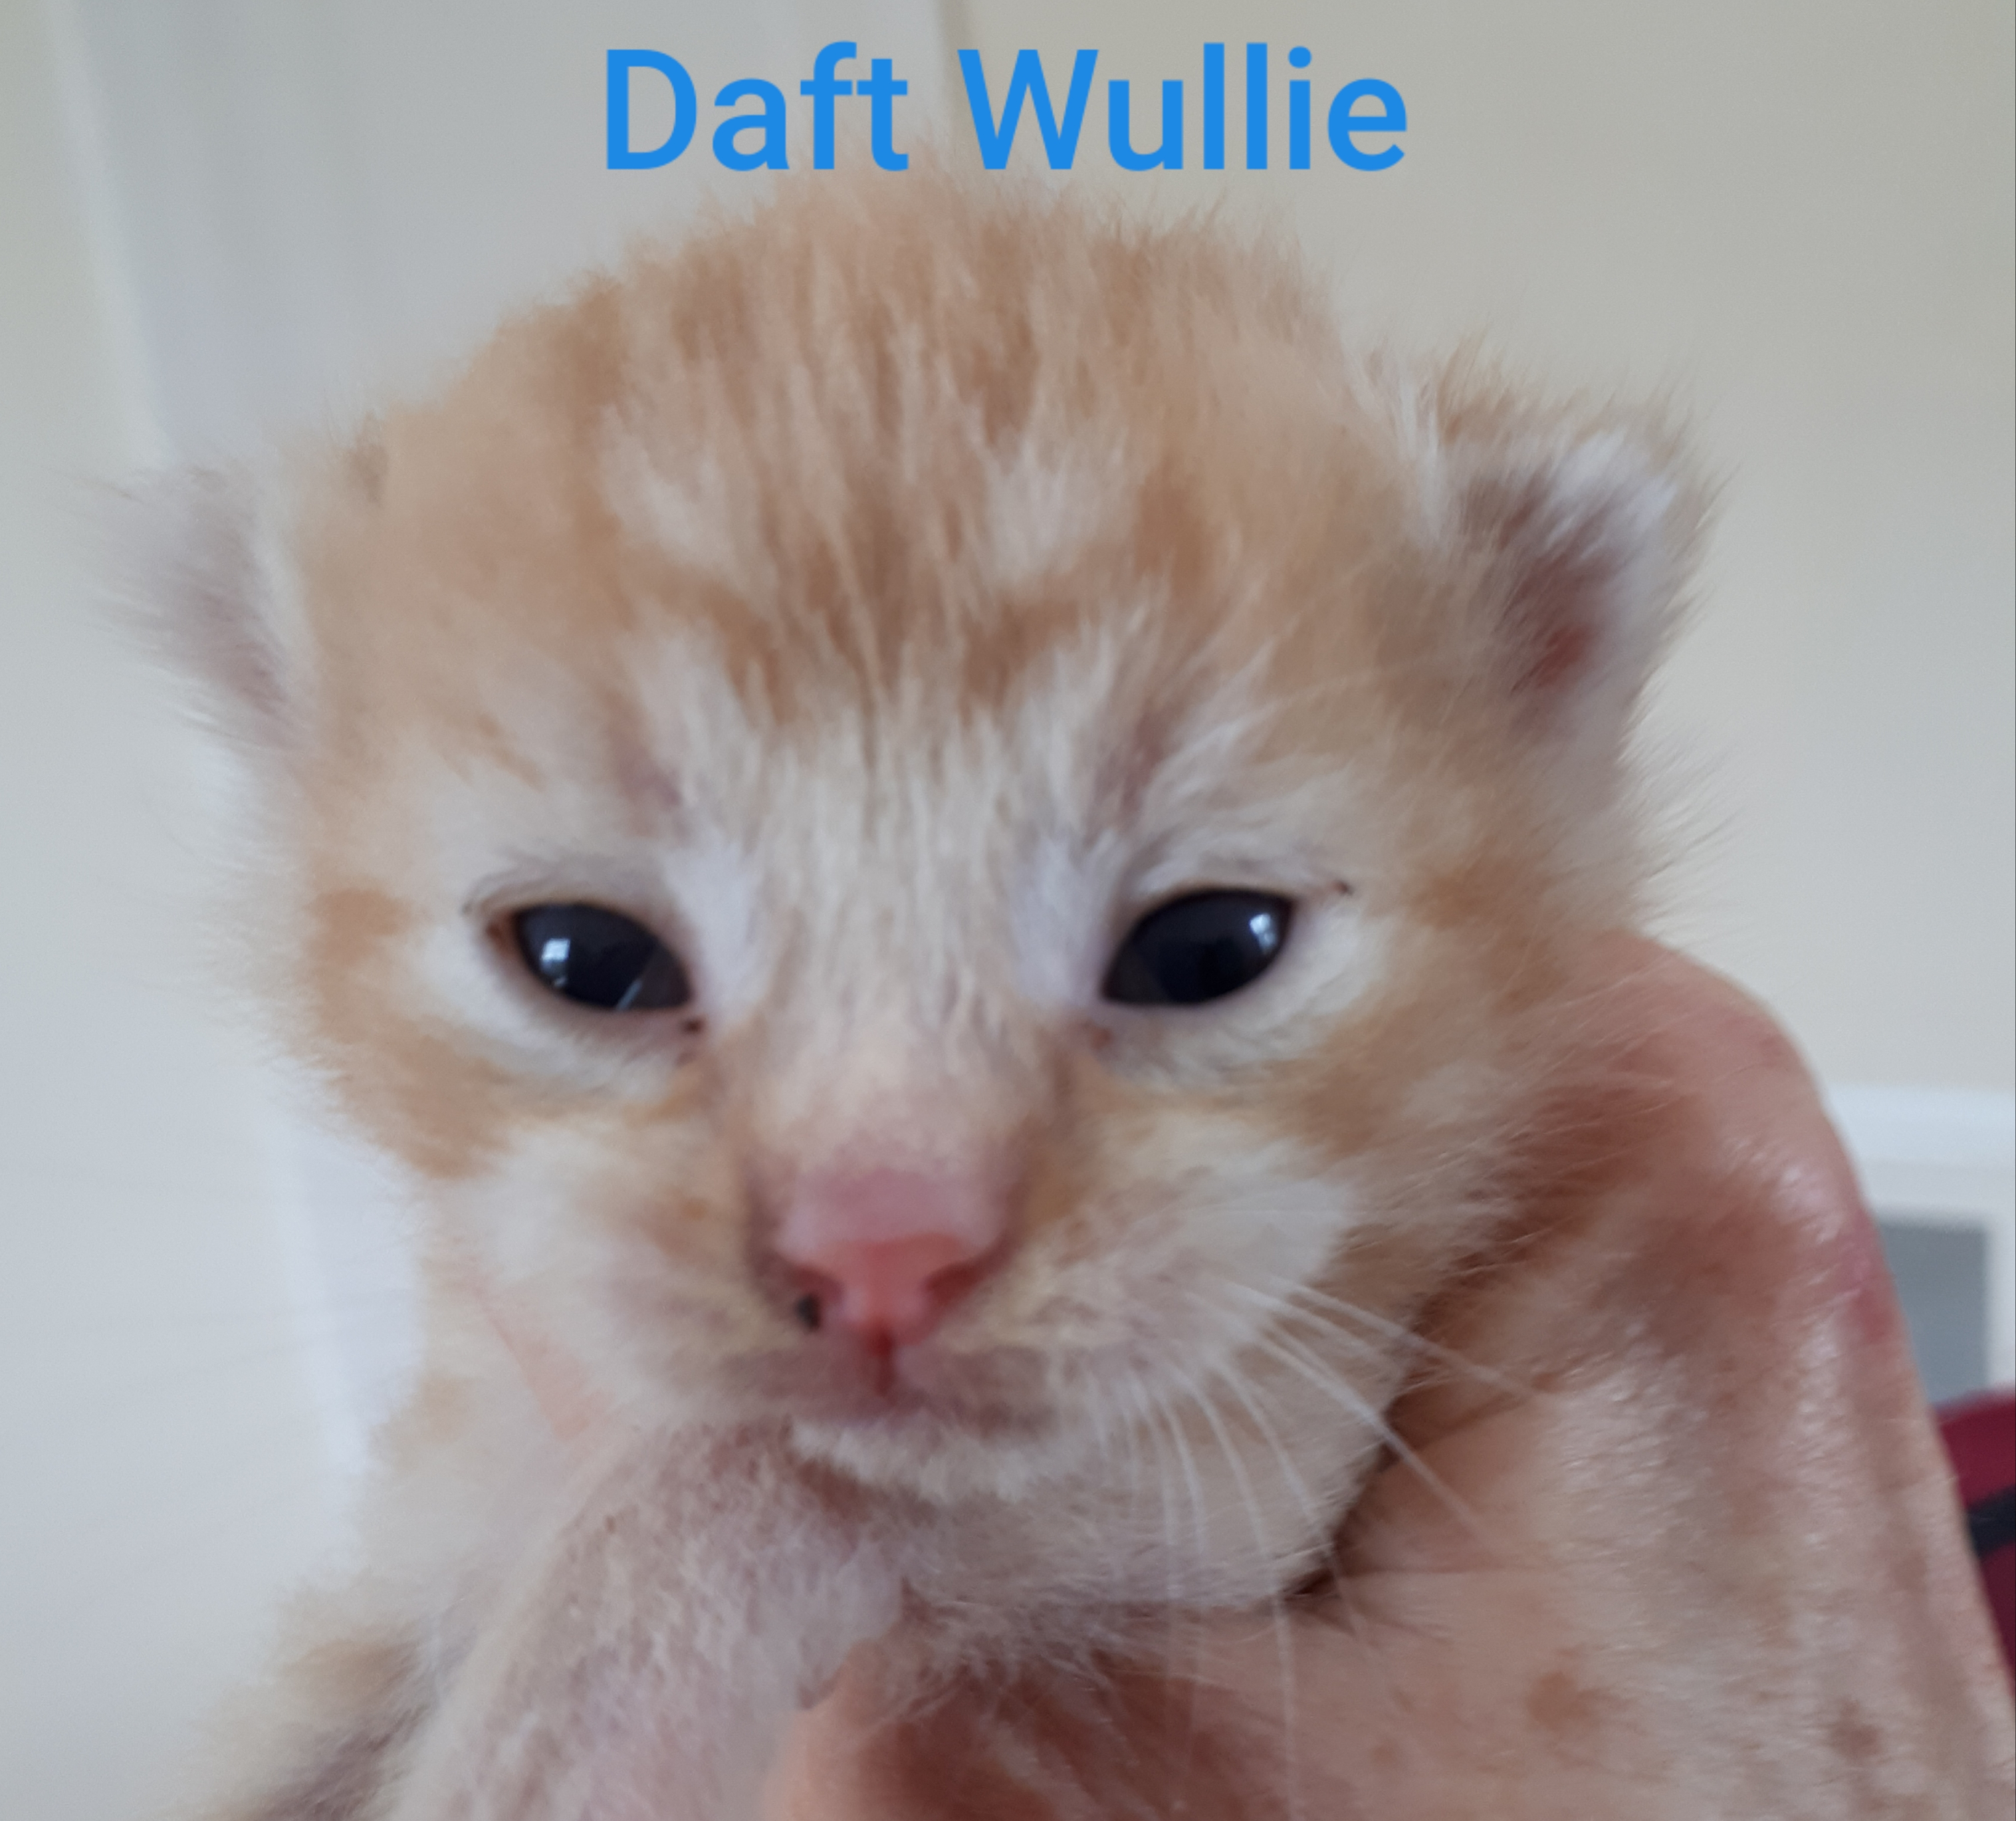 Daft Wullie, Bear River – currently in foster care